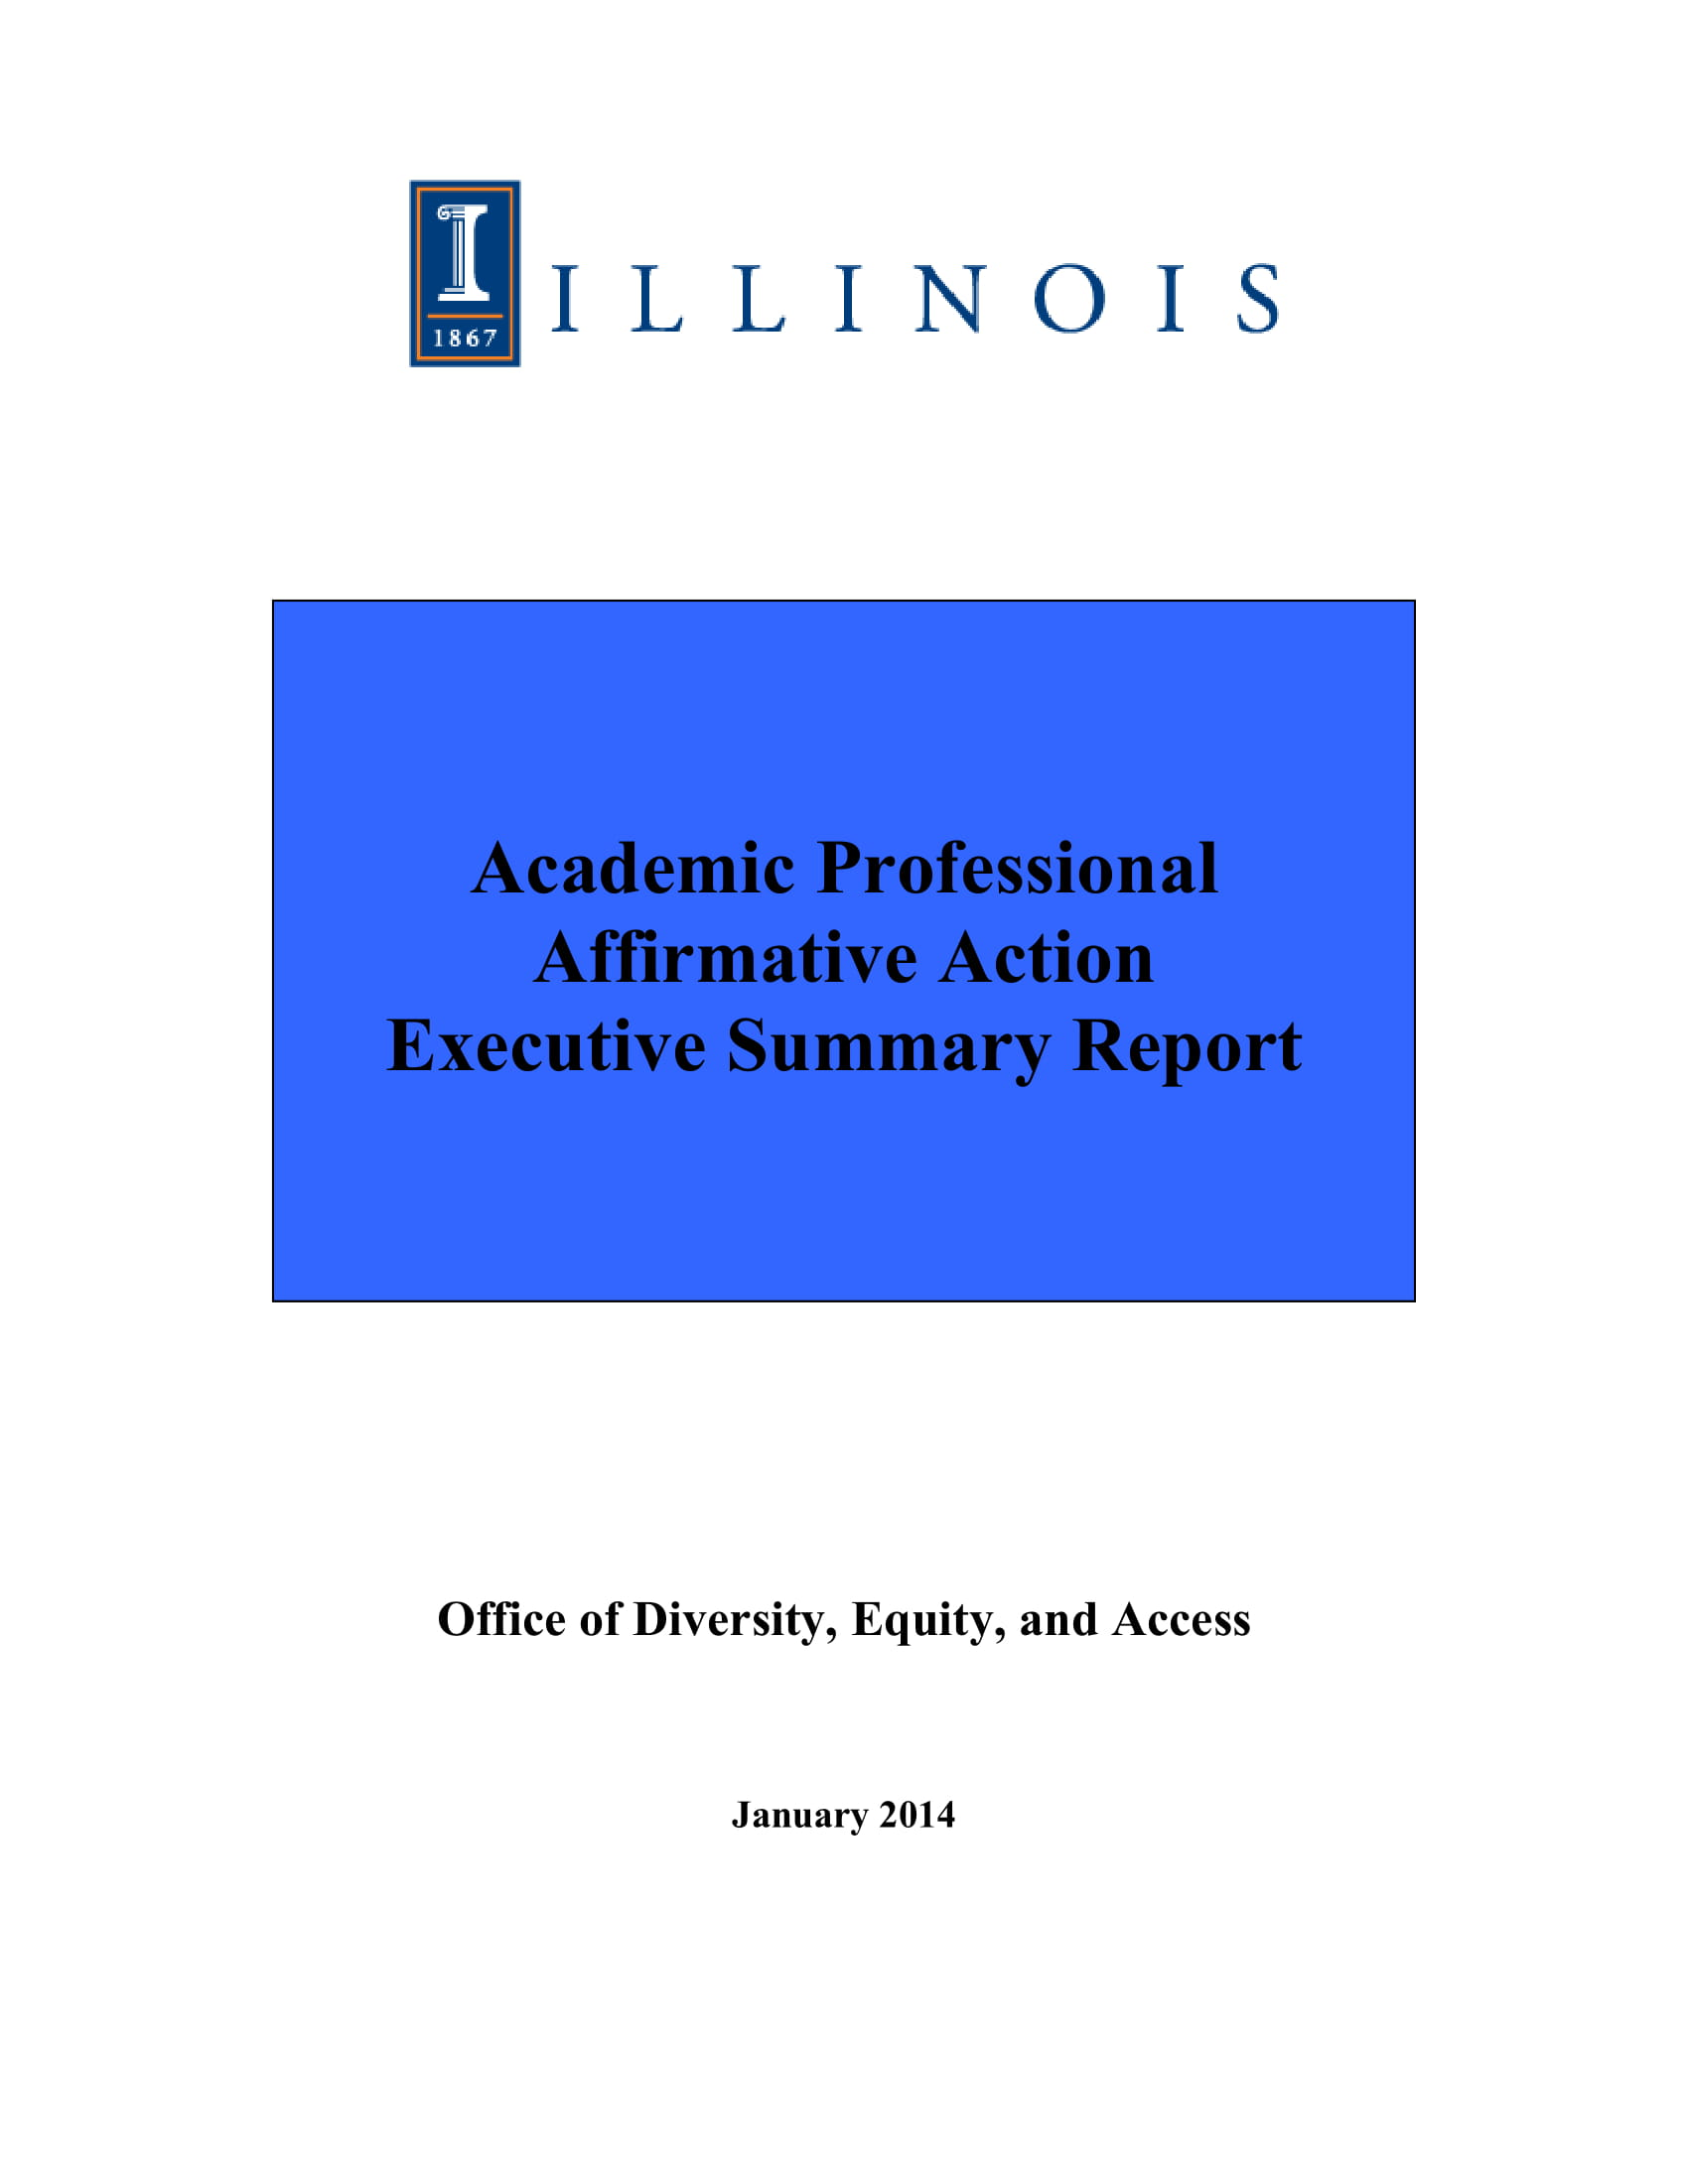 academic professional affirmative action plan executive summary report example 01